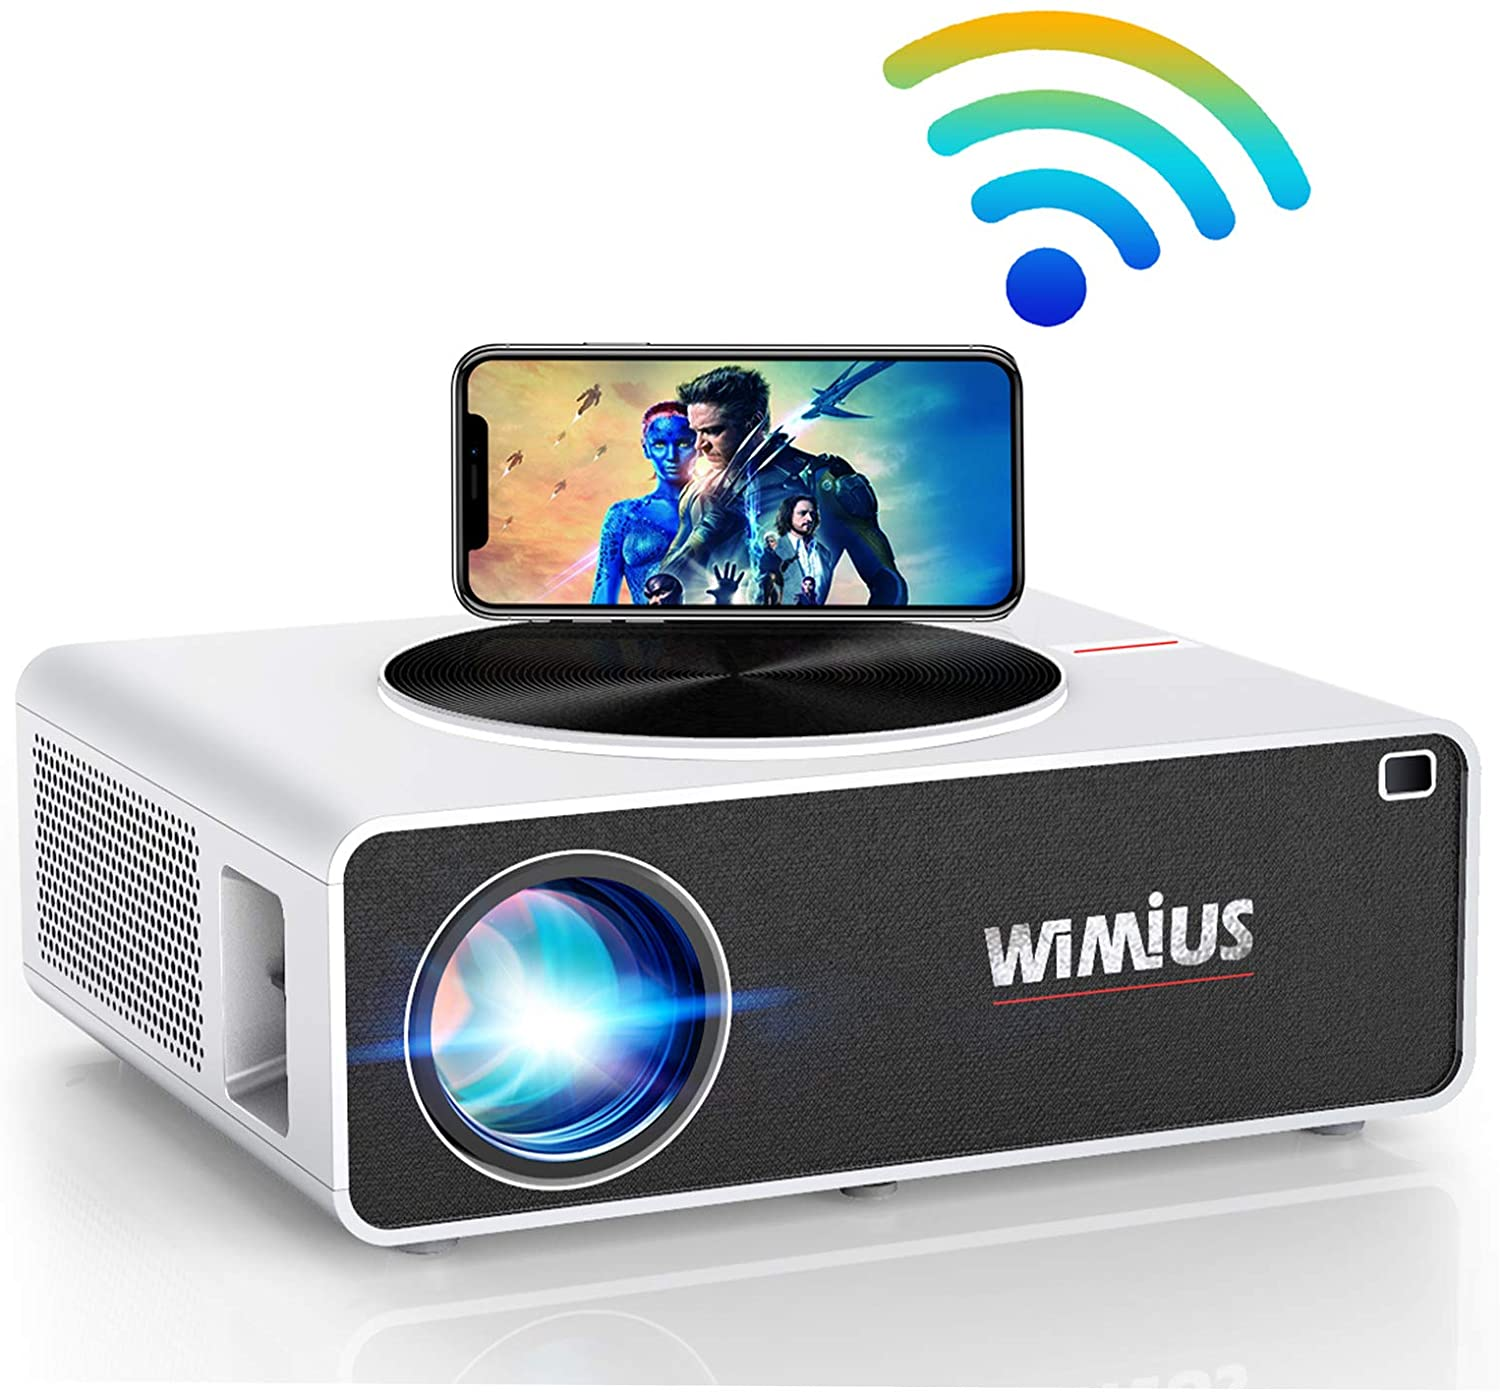 WiMiUS K3 7500 Lux Video Projector